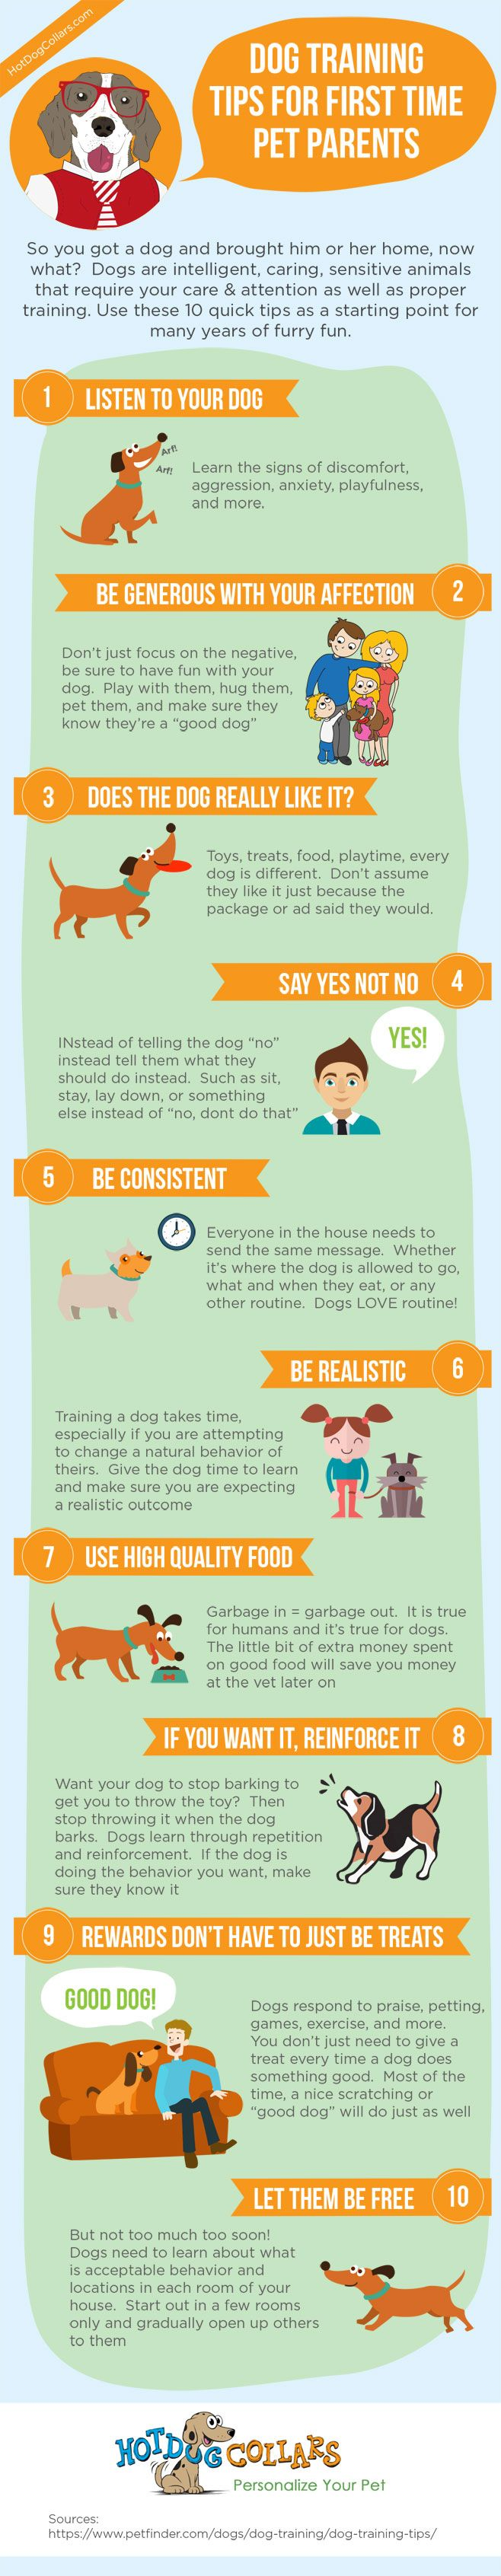 Use these 10 dog training tips from Hot Dog Collars for first time fur parents as a starting point for many years of furry fun!